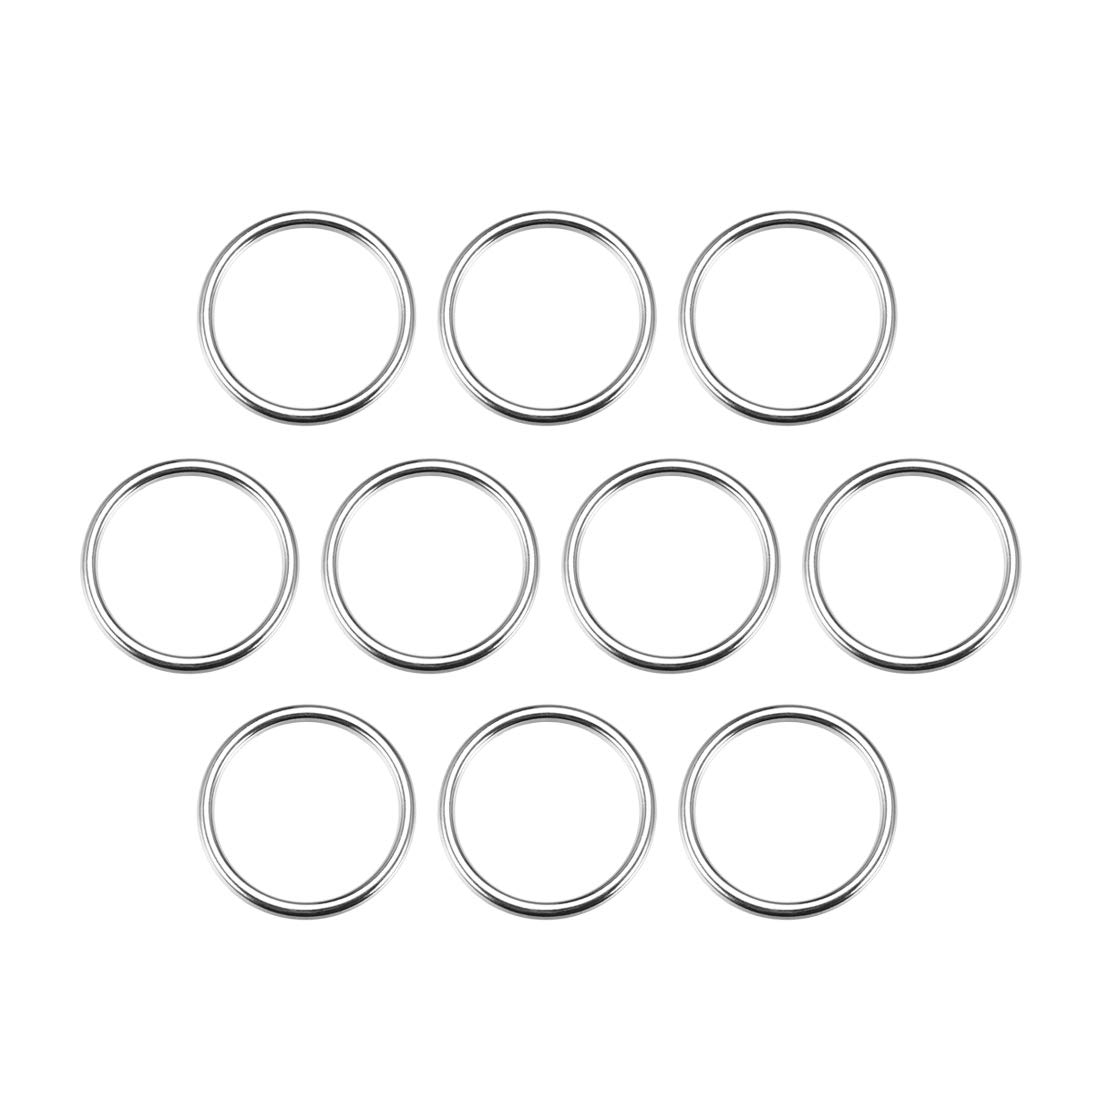 uxcell/® 10 Pcs O Ring Buckle 0.8 Inch Metal Circular O-Rings Black for Hardware Bags Belts Craft DIY Accessories